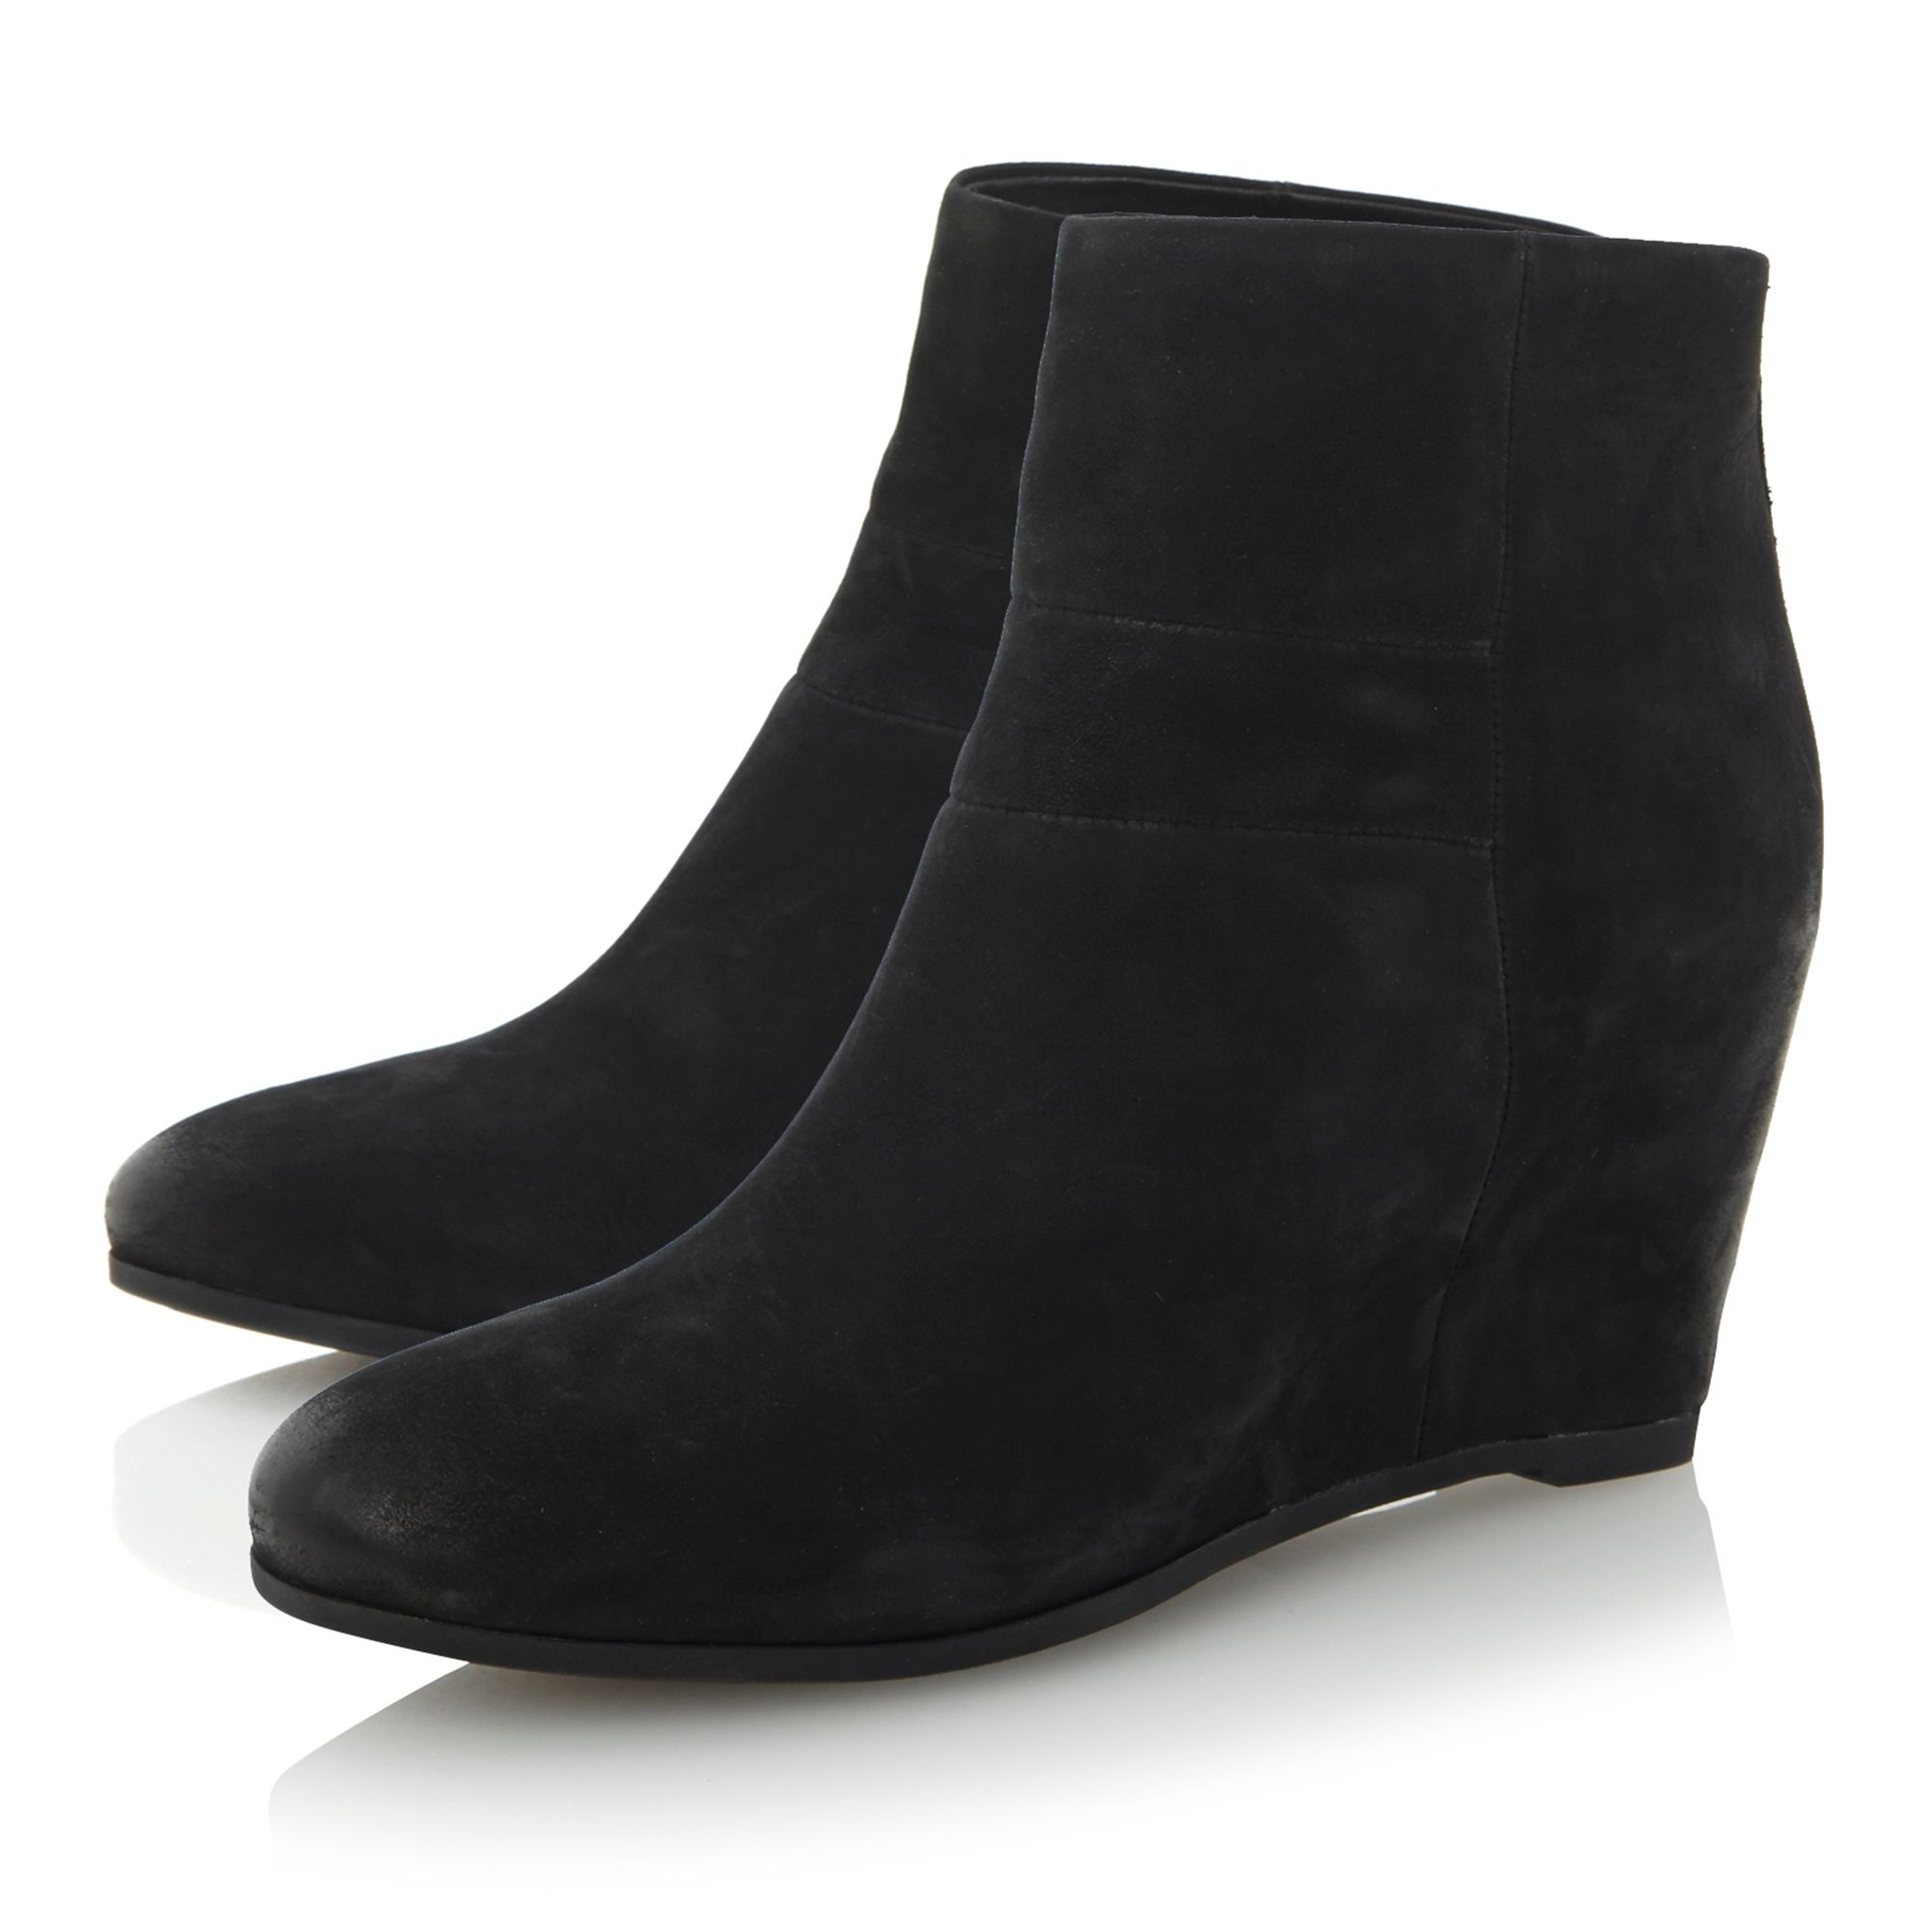 Ultraviolet D34-side strap wedge ankle boots